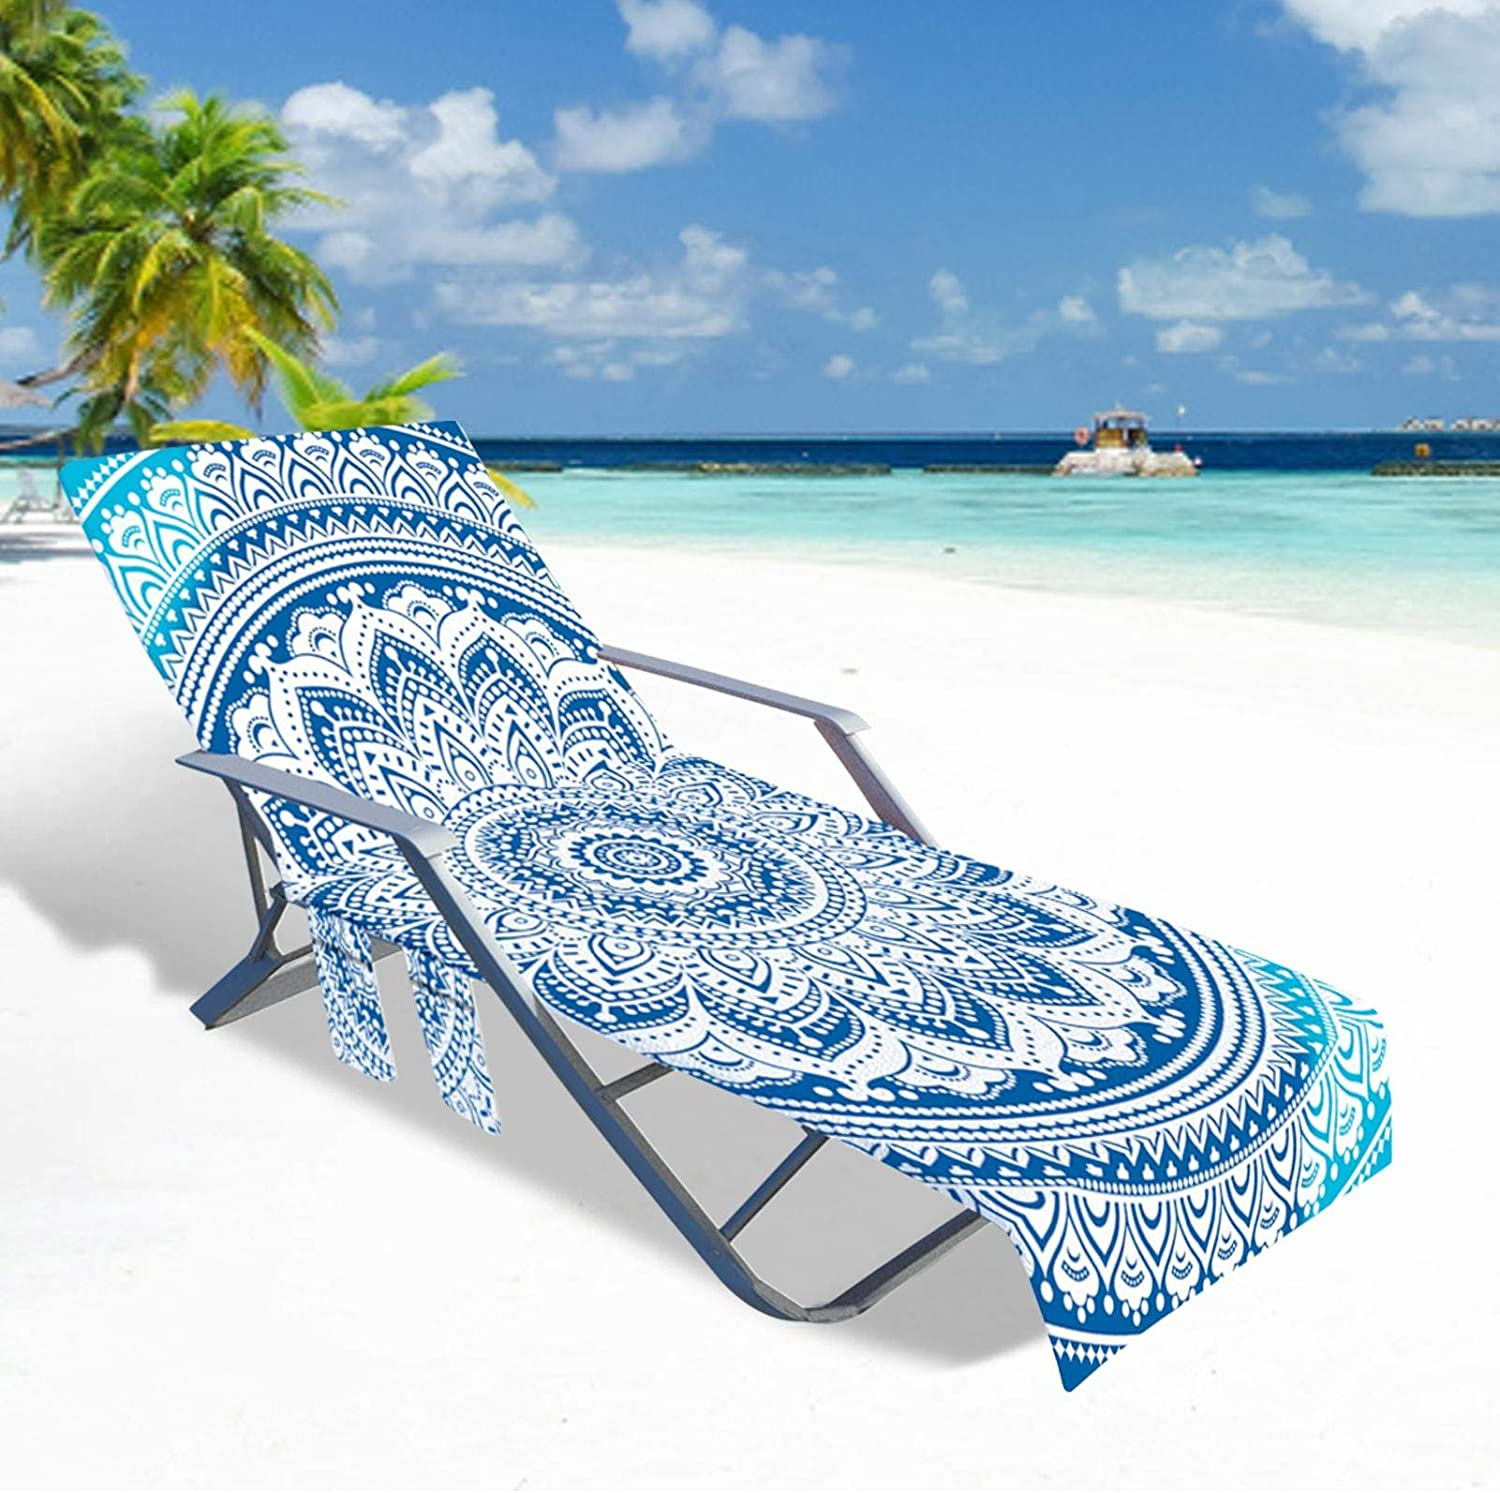 BEACH MAT BEACH RECLINER TOWEL COVER SIDE POCKETS MICROFIBER CHAISE LOUNGE CHAIR COVER FOR SUN LOUNGER SUNBATHING GARDEN BEACH HOTEL EASY TO CARRY AROUND OUTDOOR PATIO CHAIRS RECLINERS COVER